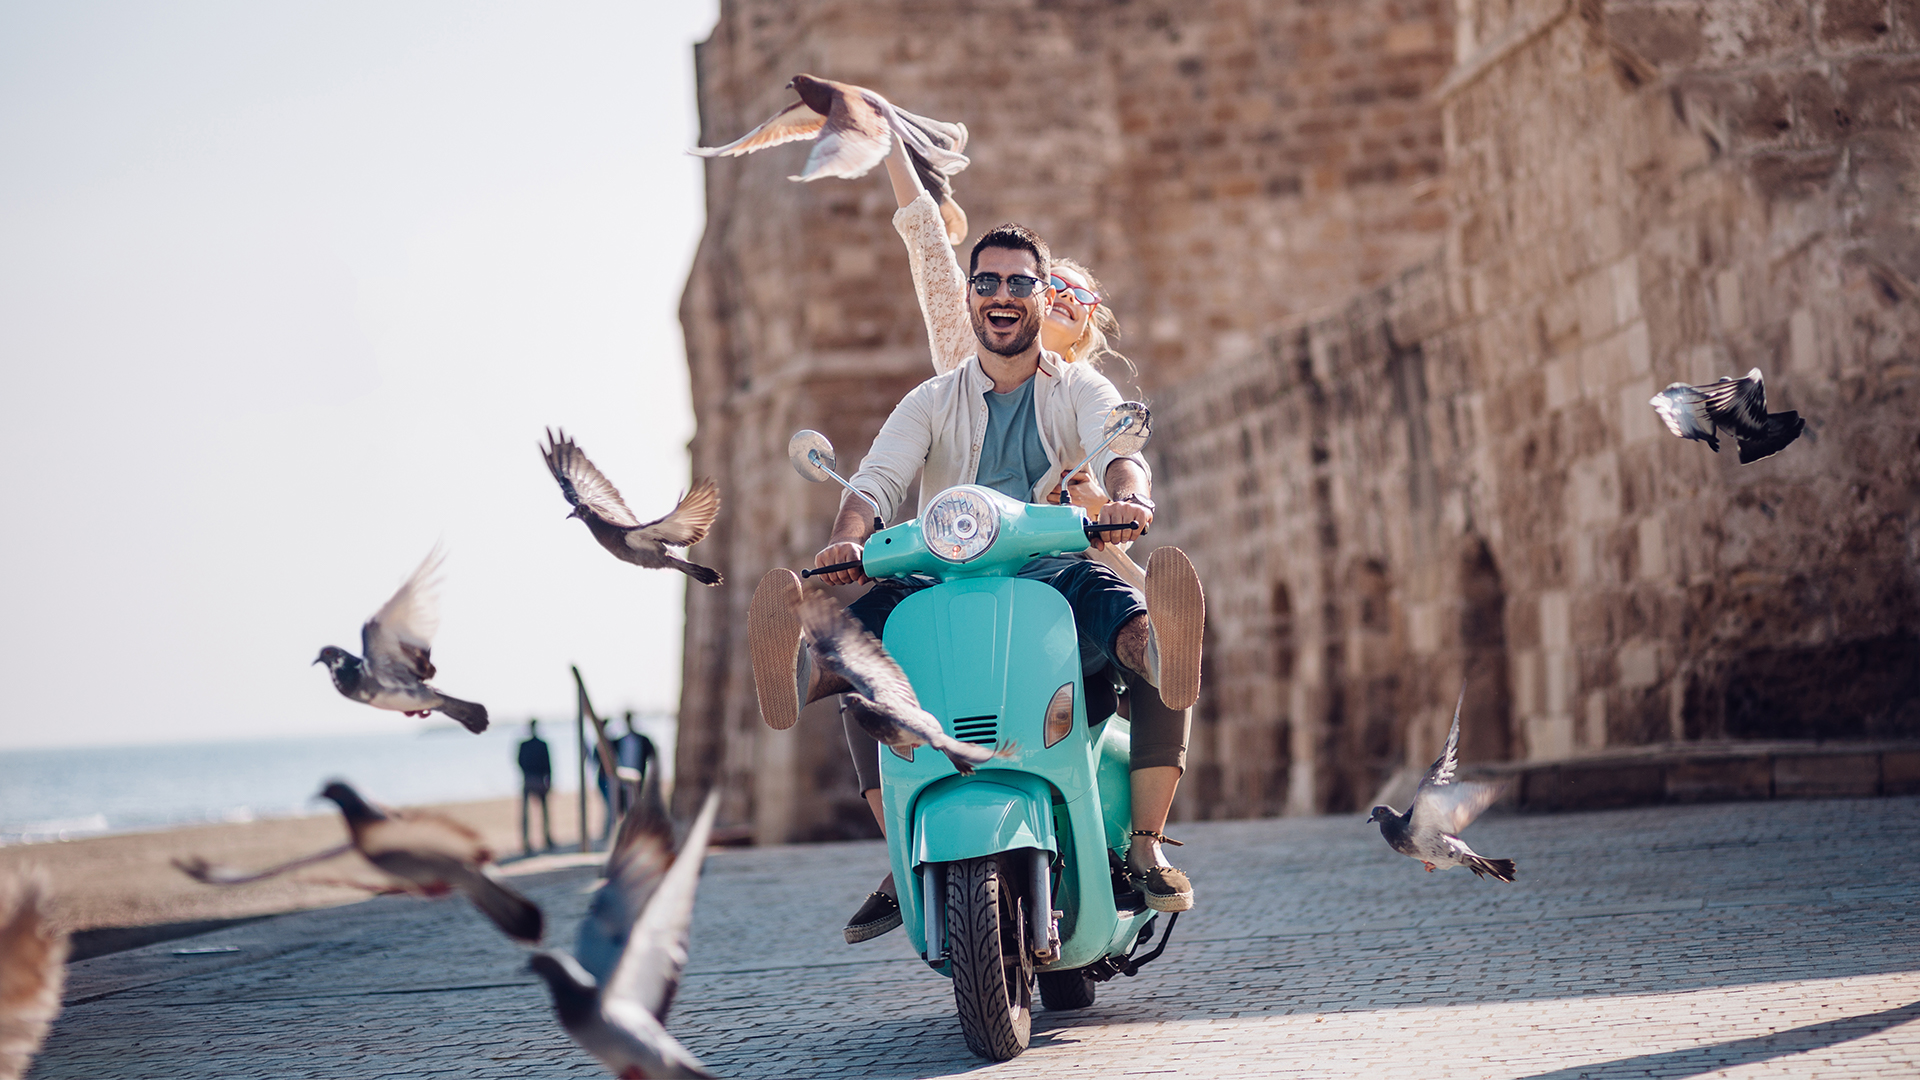 Explore Rome on your own on a Vespa